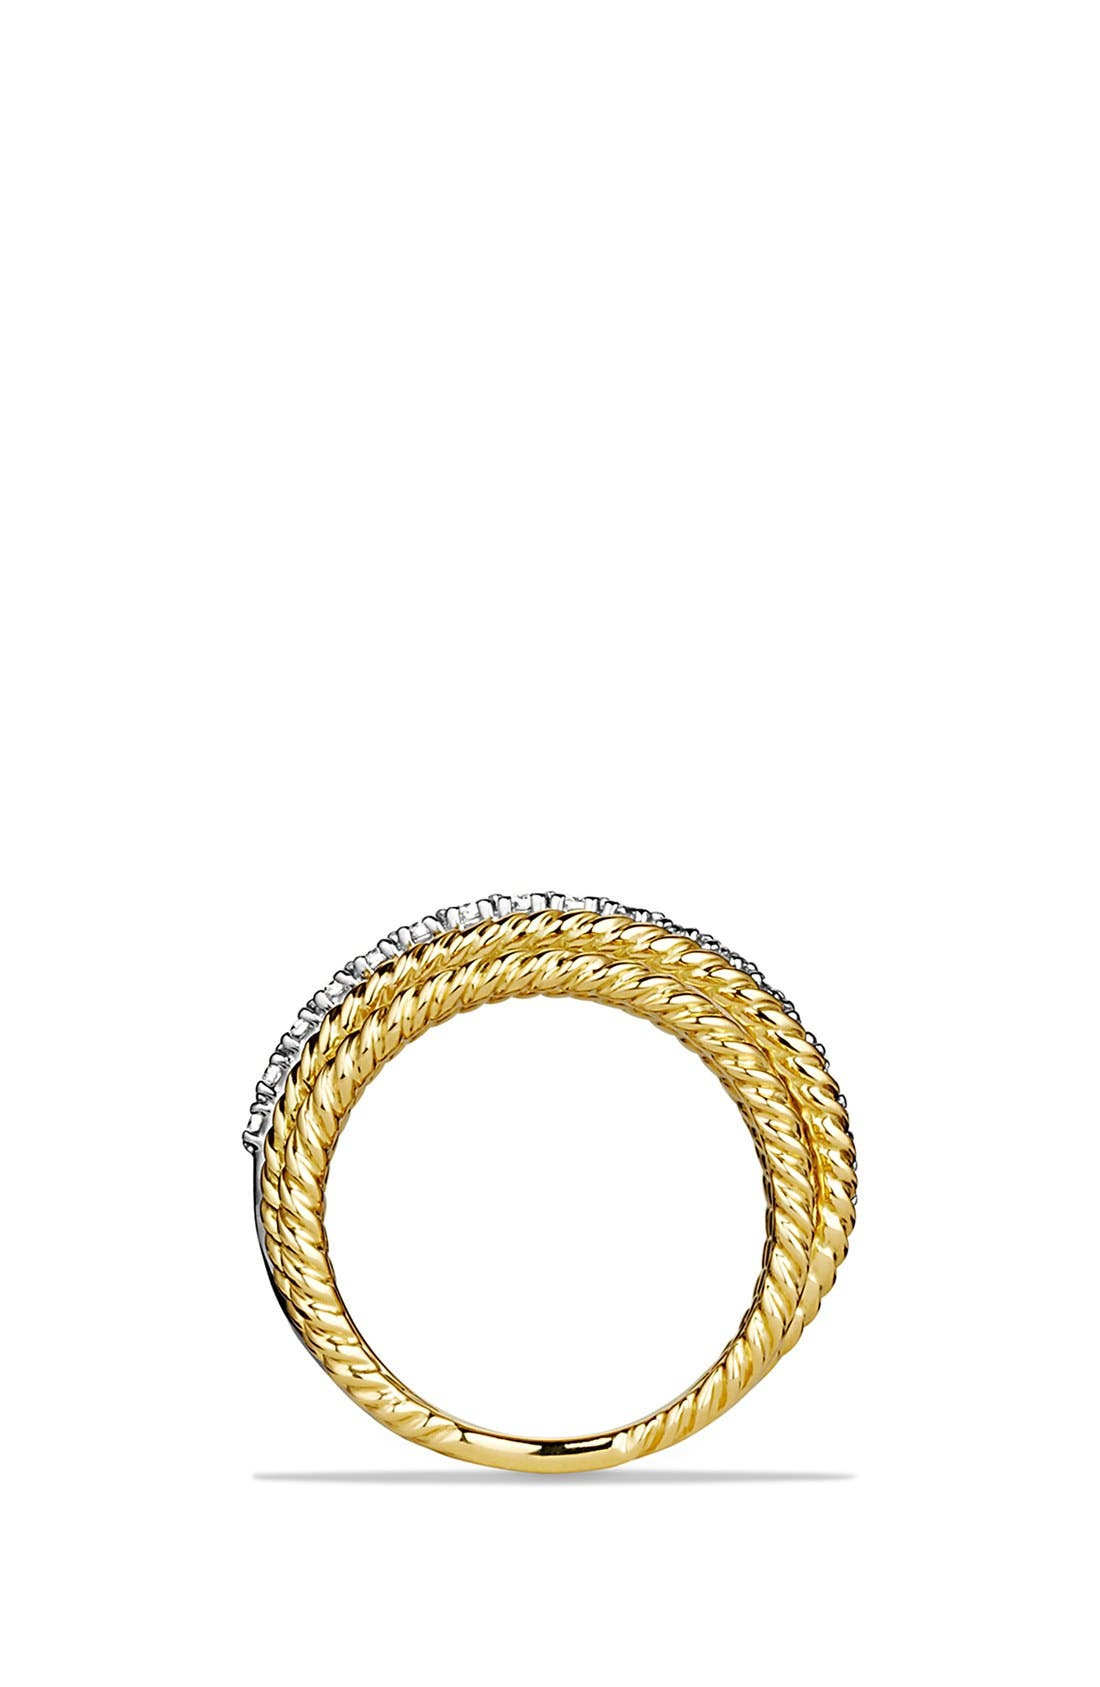 'DY Crossover' Ring with Diamonds in Gold,                             Alternate thumbnail 4, color,                             DIAMOND